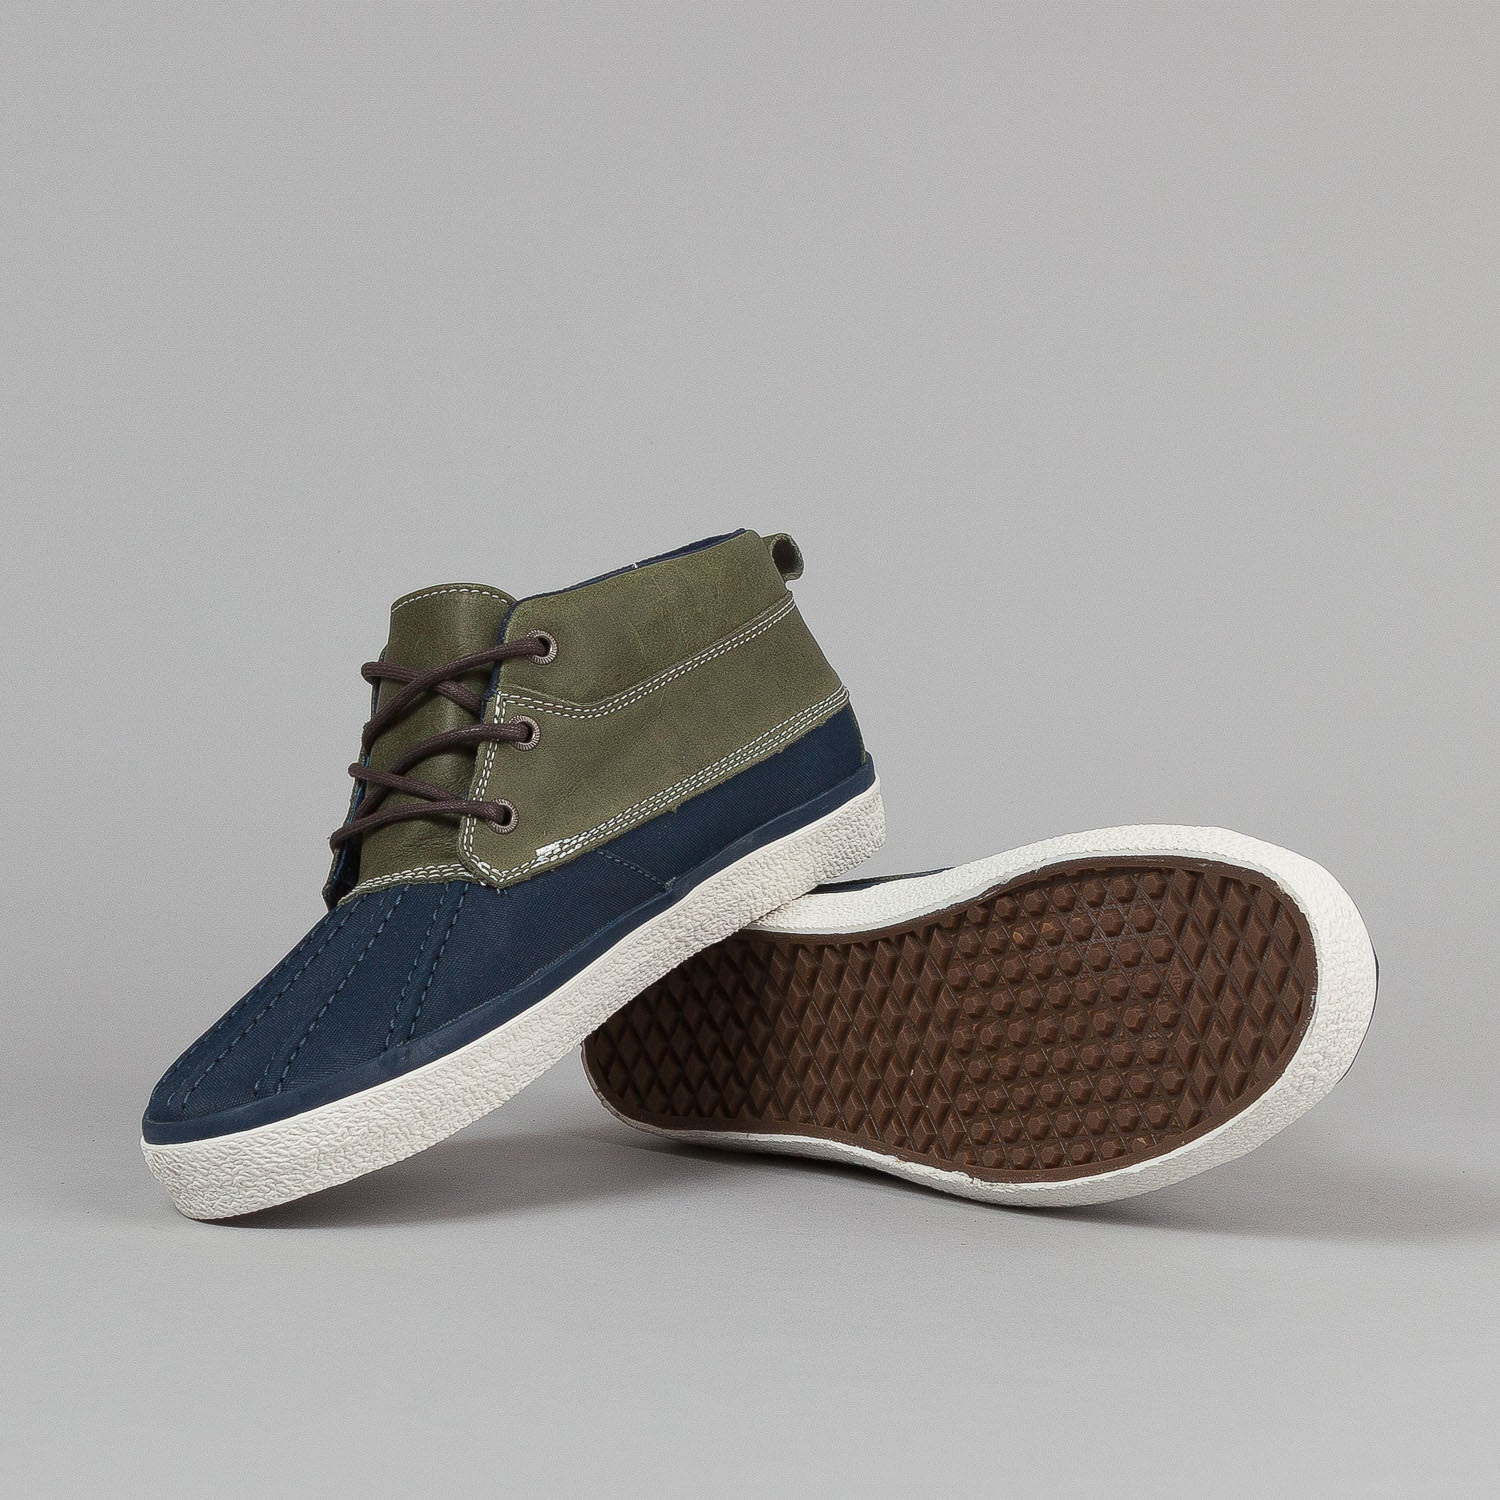 Vans Chukka Del Pato CA Shoes - Dress Blues / Vanilla Ice